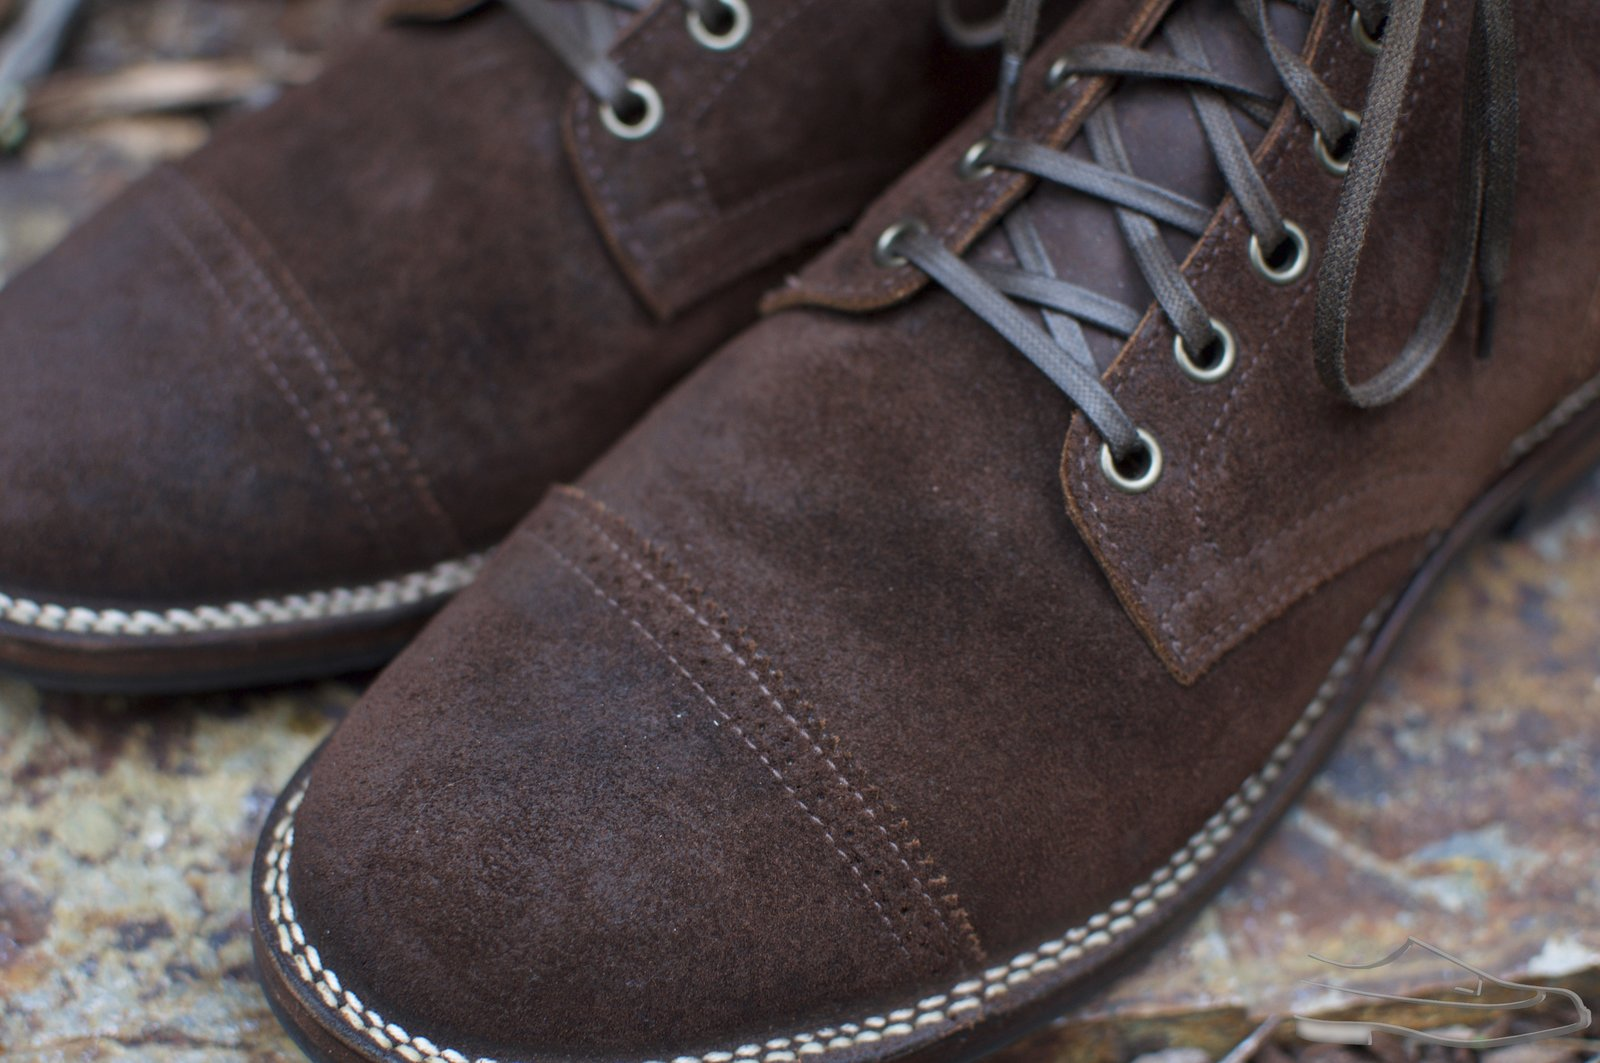 Viberg Tabacco Reverse Chamois Service Boots - 2020-10-23 - 3.jpg